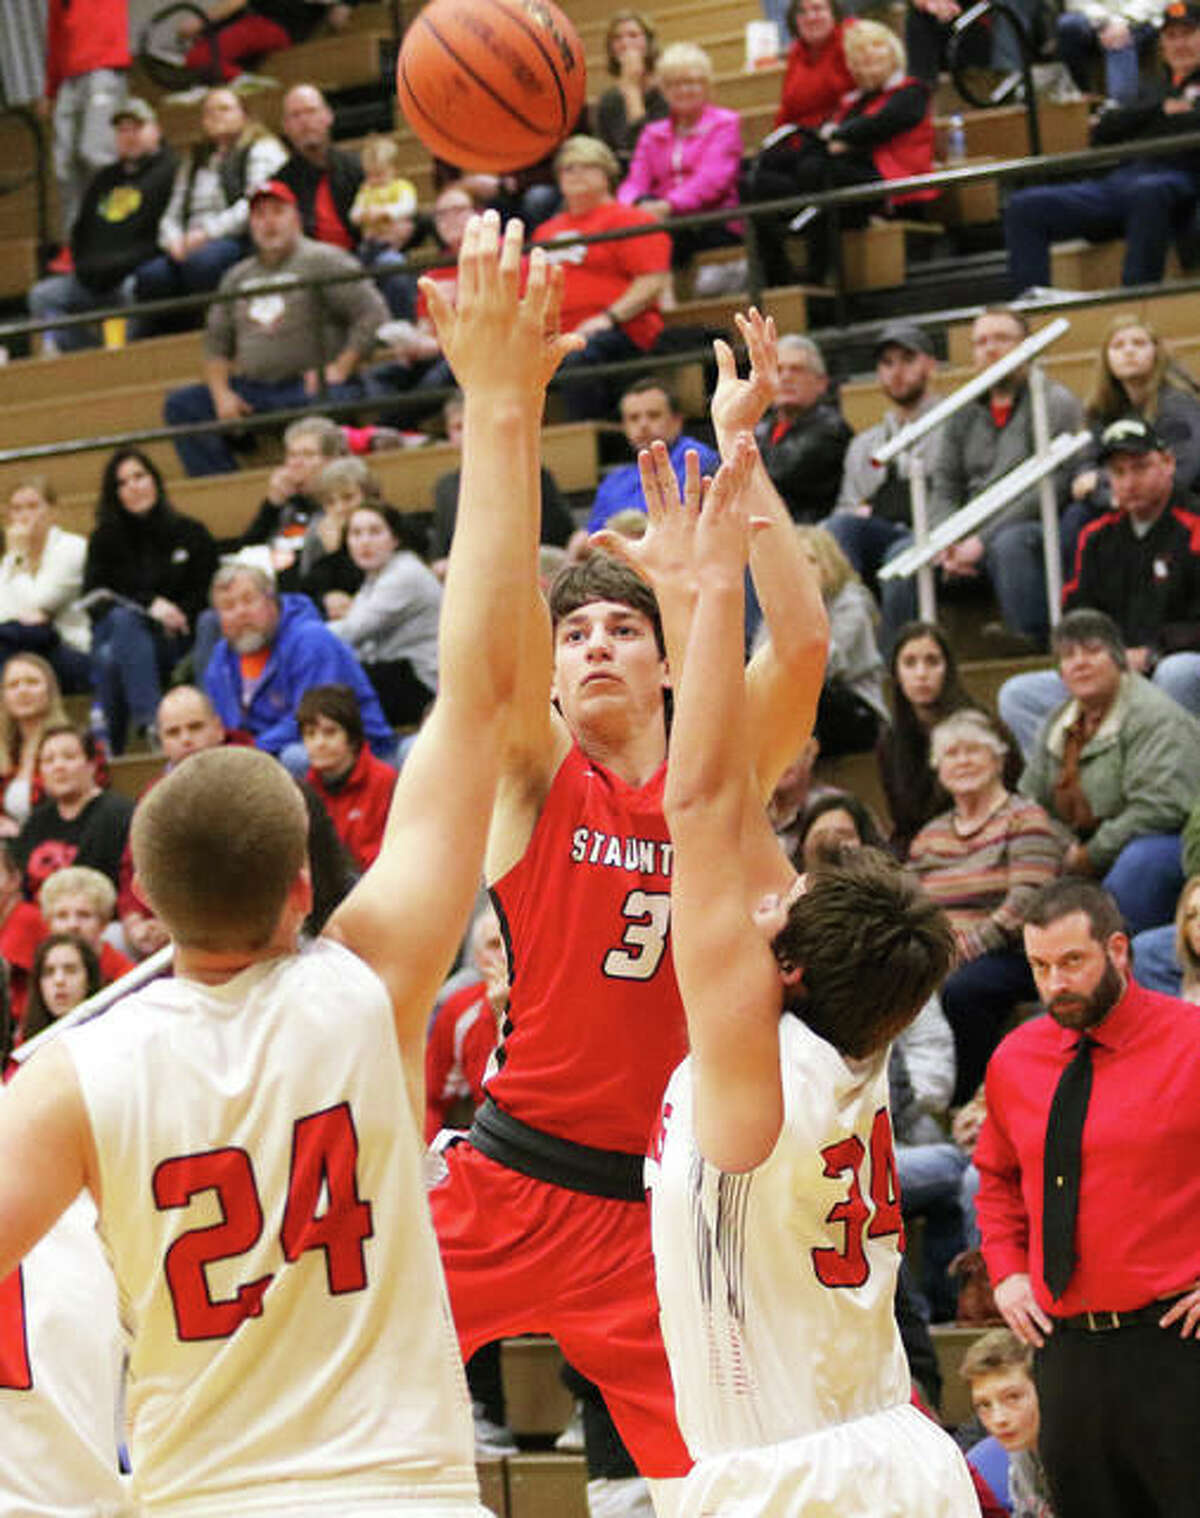 Staunton's Brent Kinder (3), shown shooting over Calhoun's Ben Eberlin (24) and Brody Caselton in the title game at the Carlinville Tourney on Dec. 30, scored 14 points in a win over Mount Olive on Tuesday night in the Macoupin County Tourney in Staunton.